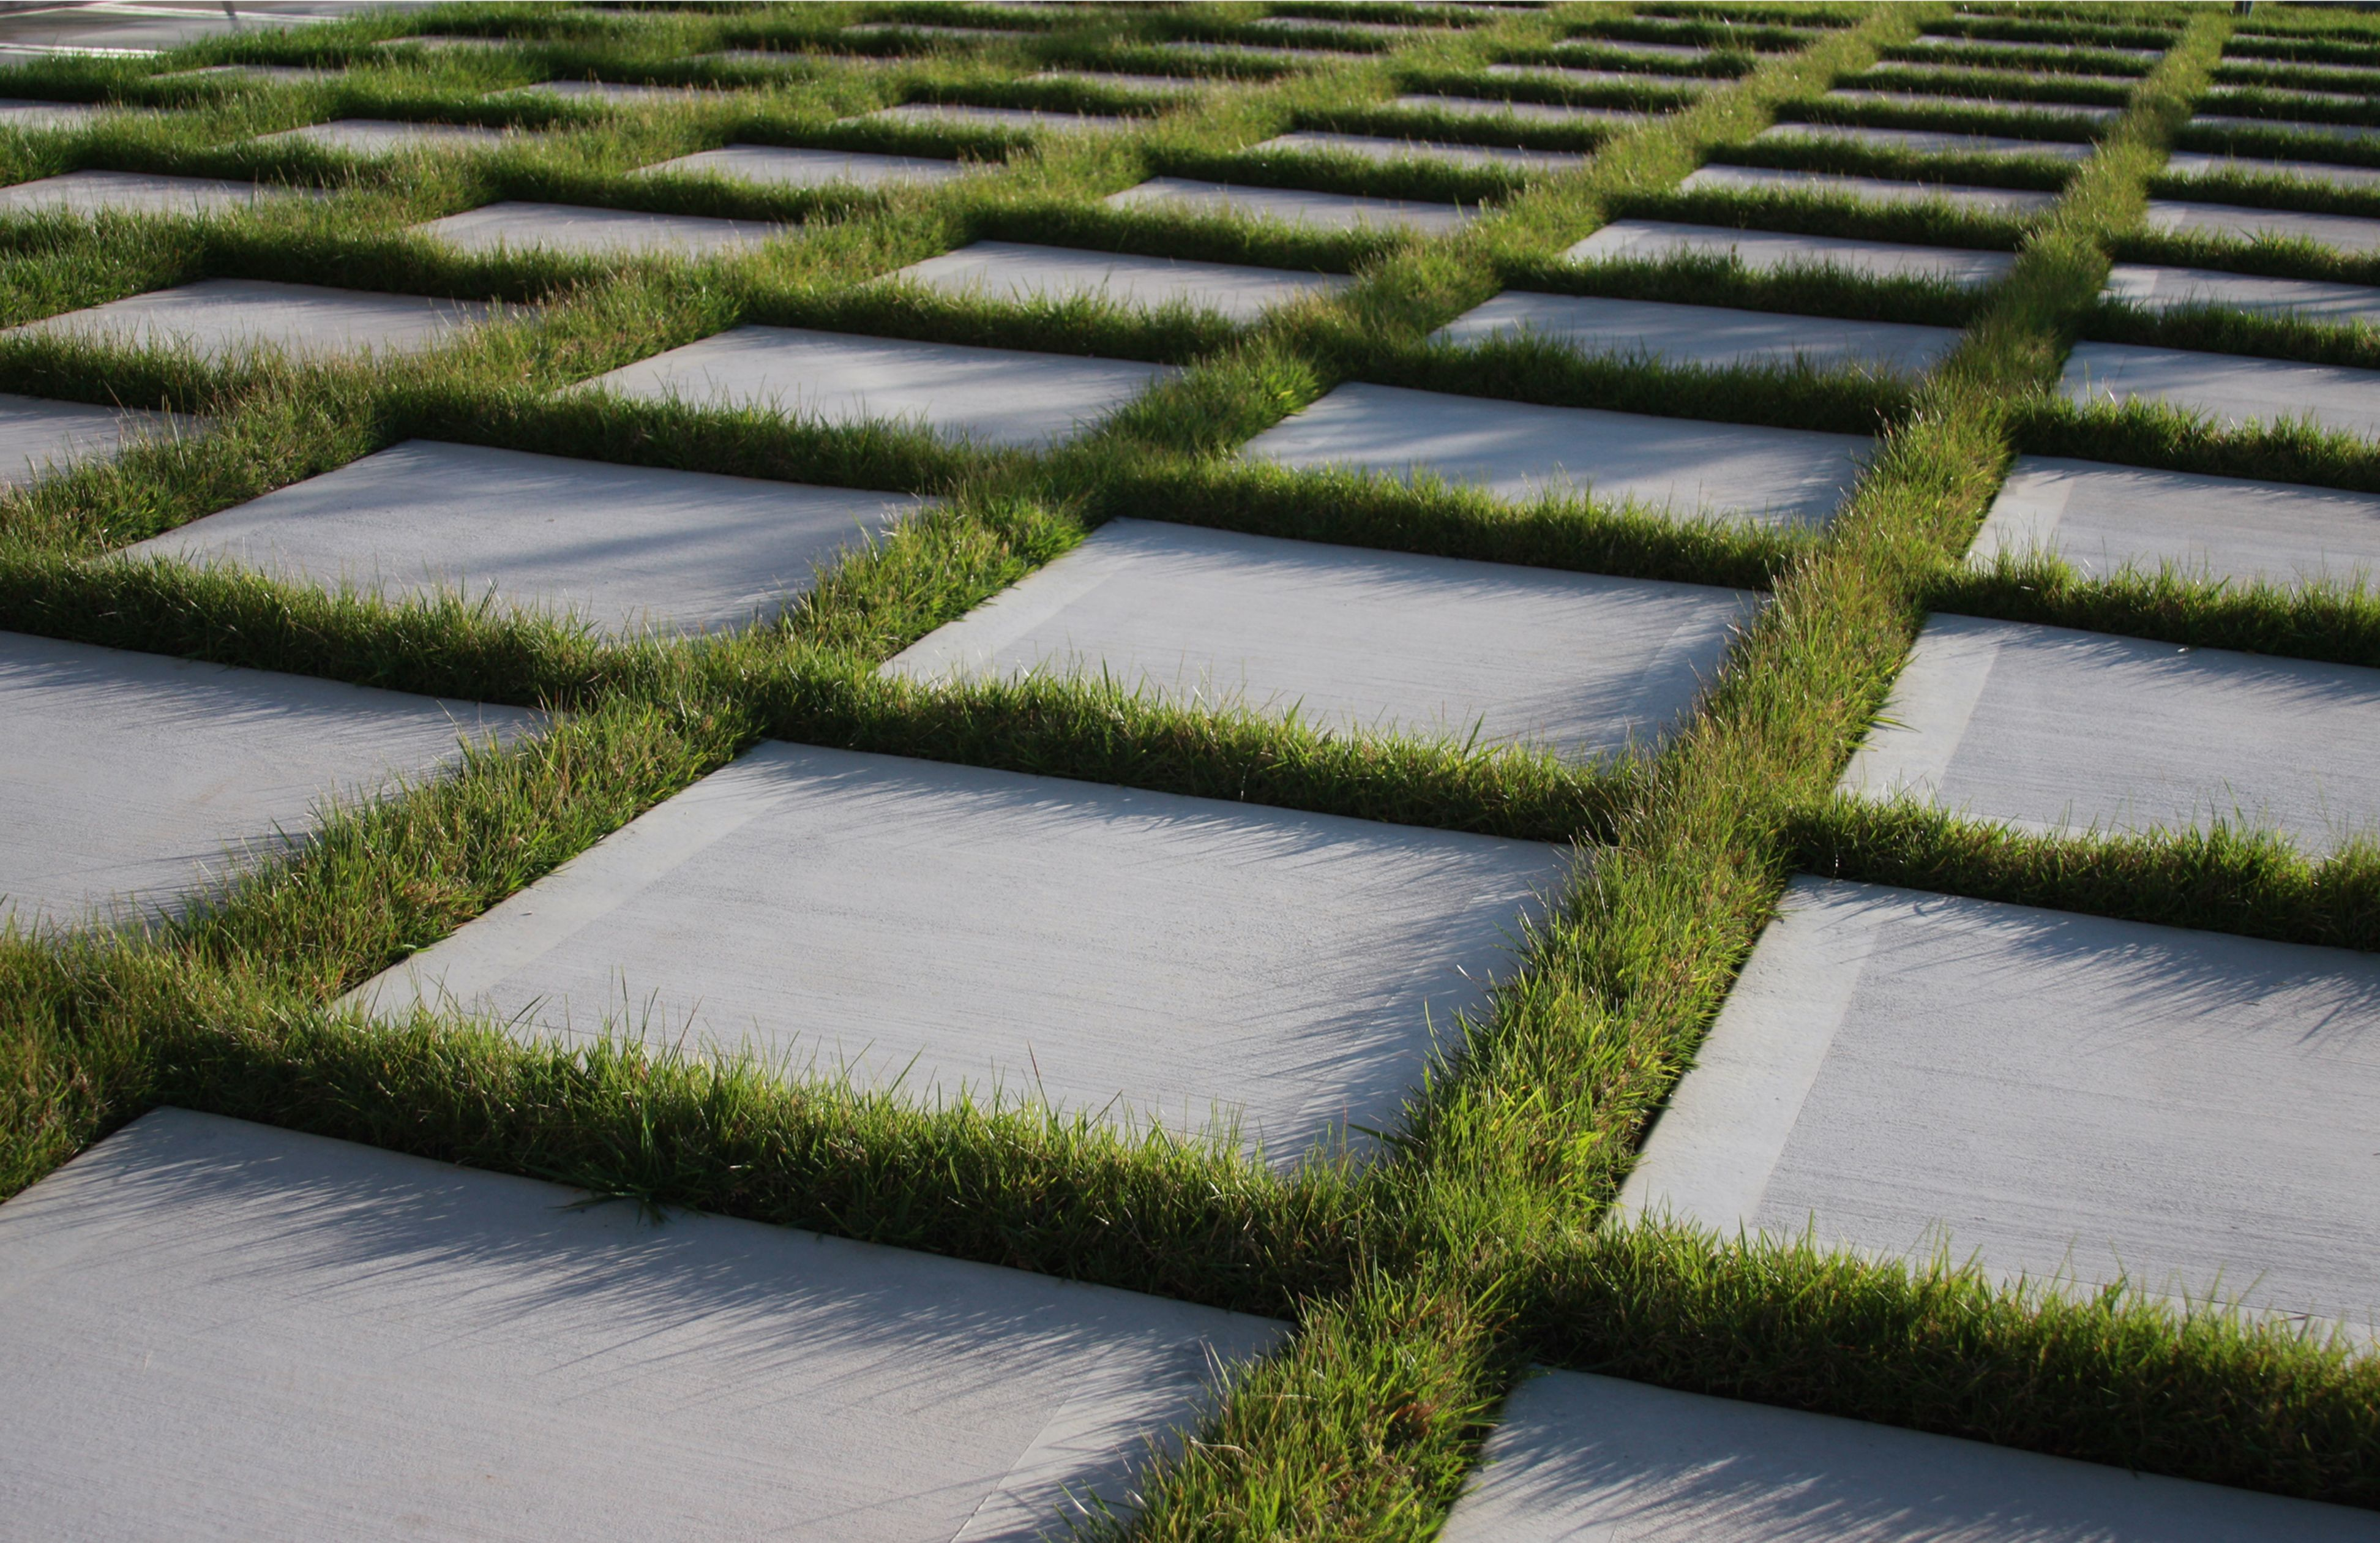 Backyard With Pavers And Grass - Ztil News on Backyard Ideas Concrete And Grass id=43664